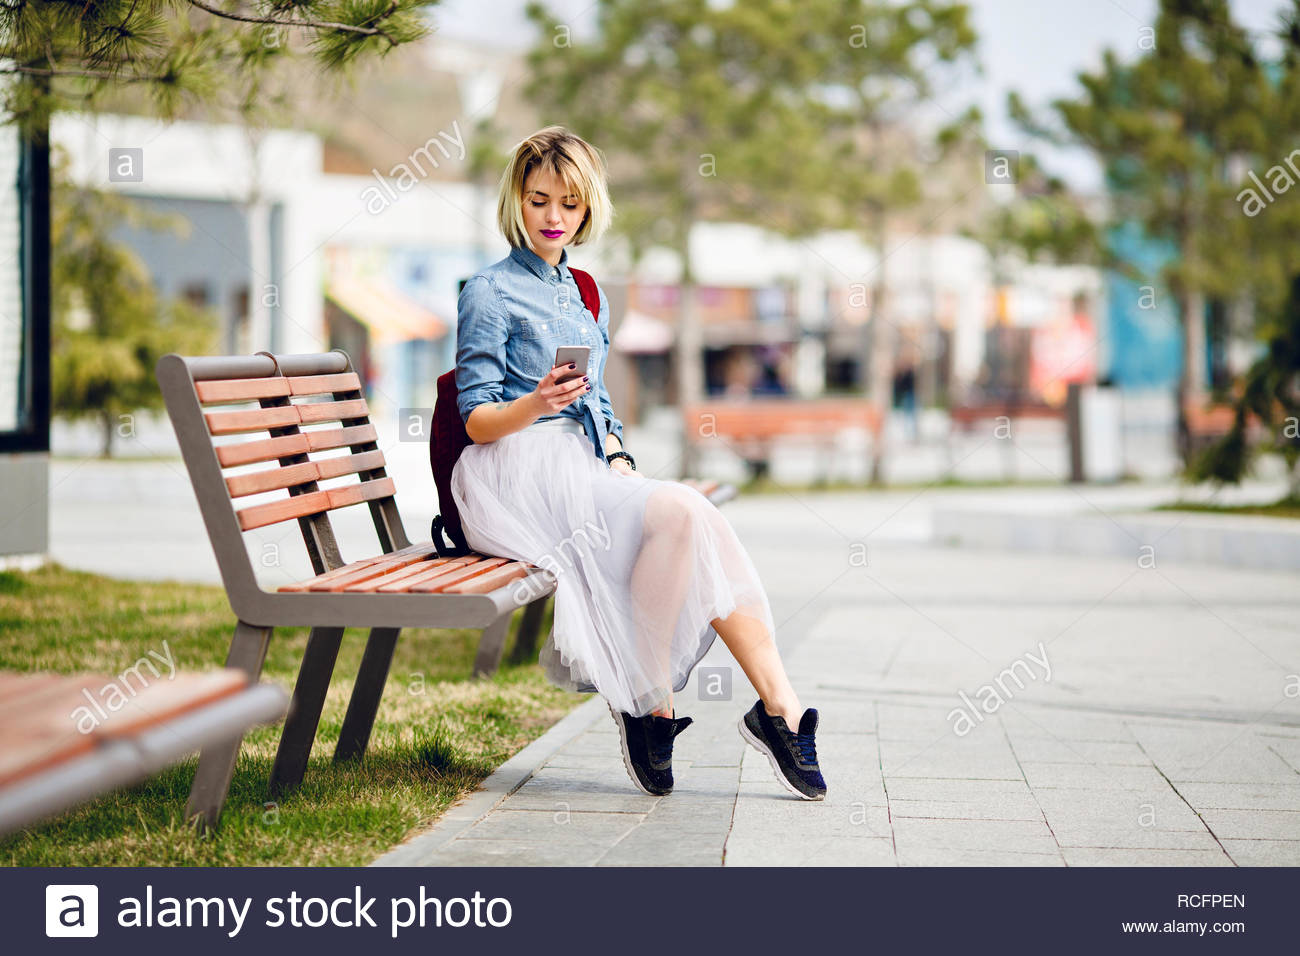 cd4af4d96 Young cute blond girl with short hair and bright pink lips sitting on a  wooden bench